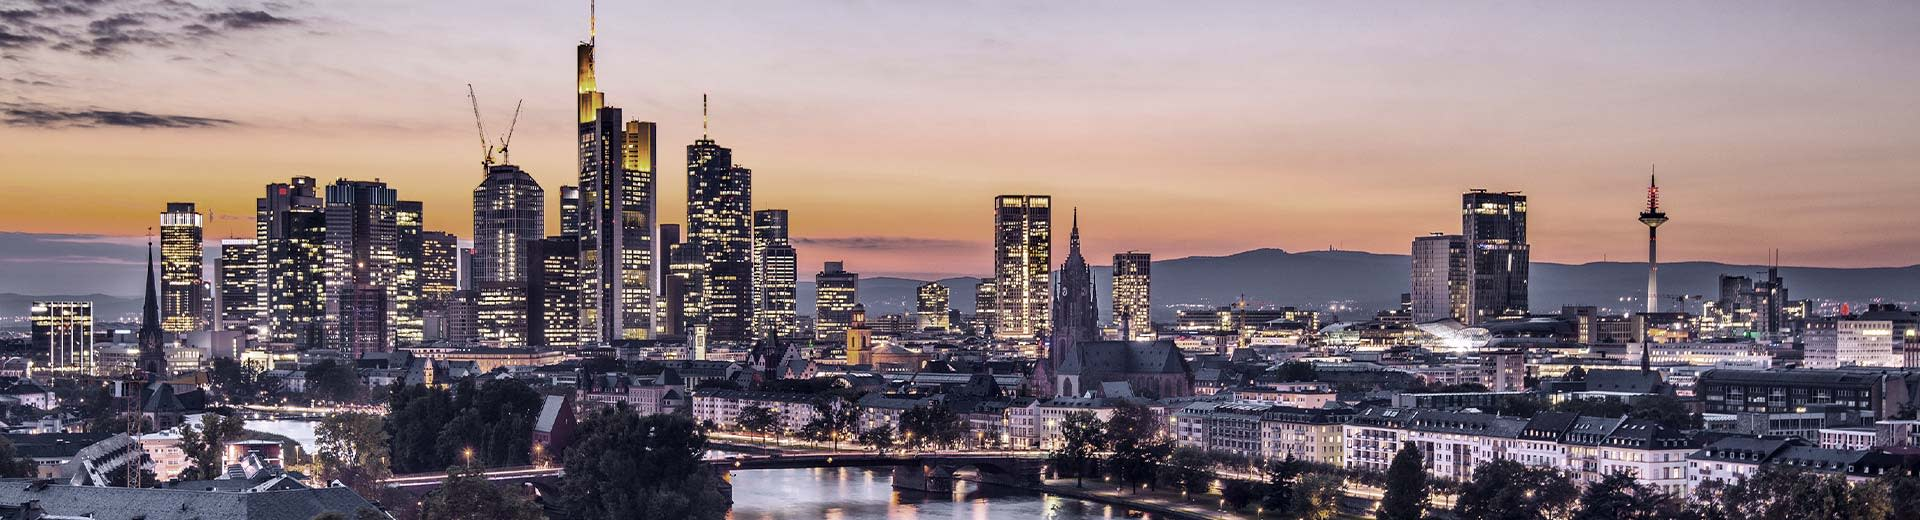 The looming skyscrapers of Frankfurt's financial district at sunset